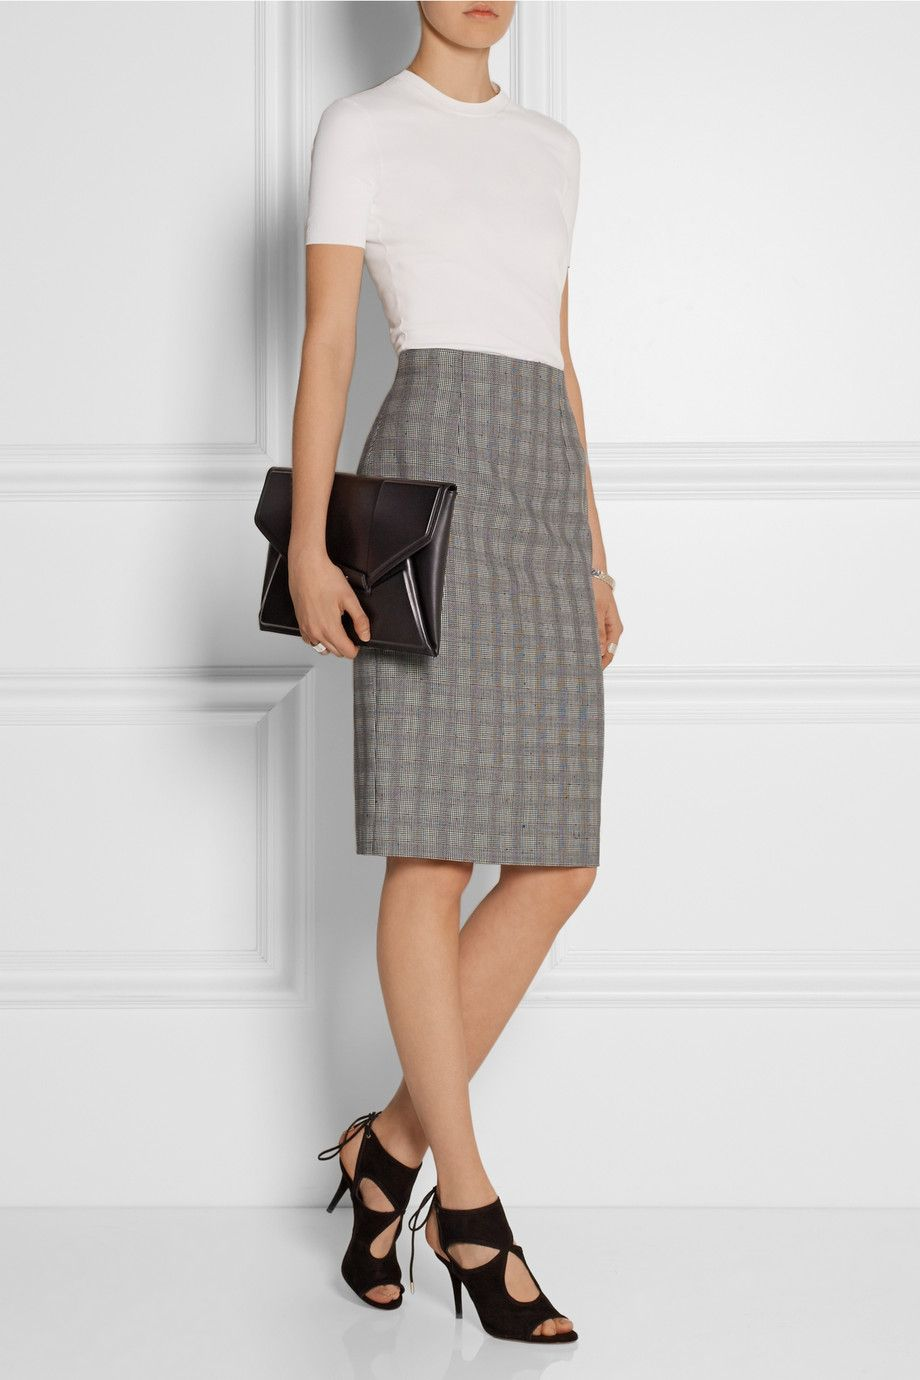 af4160ffd3 Alexander McQueen | Prince of Wales check wool-blend pencil skirt |  NET-A-PORTER.COM